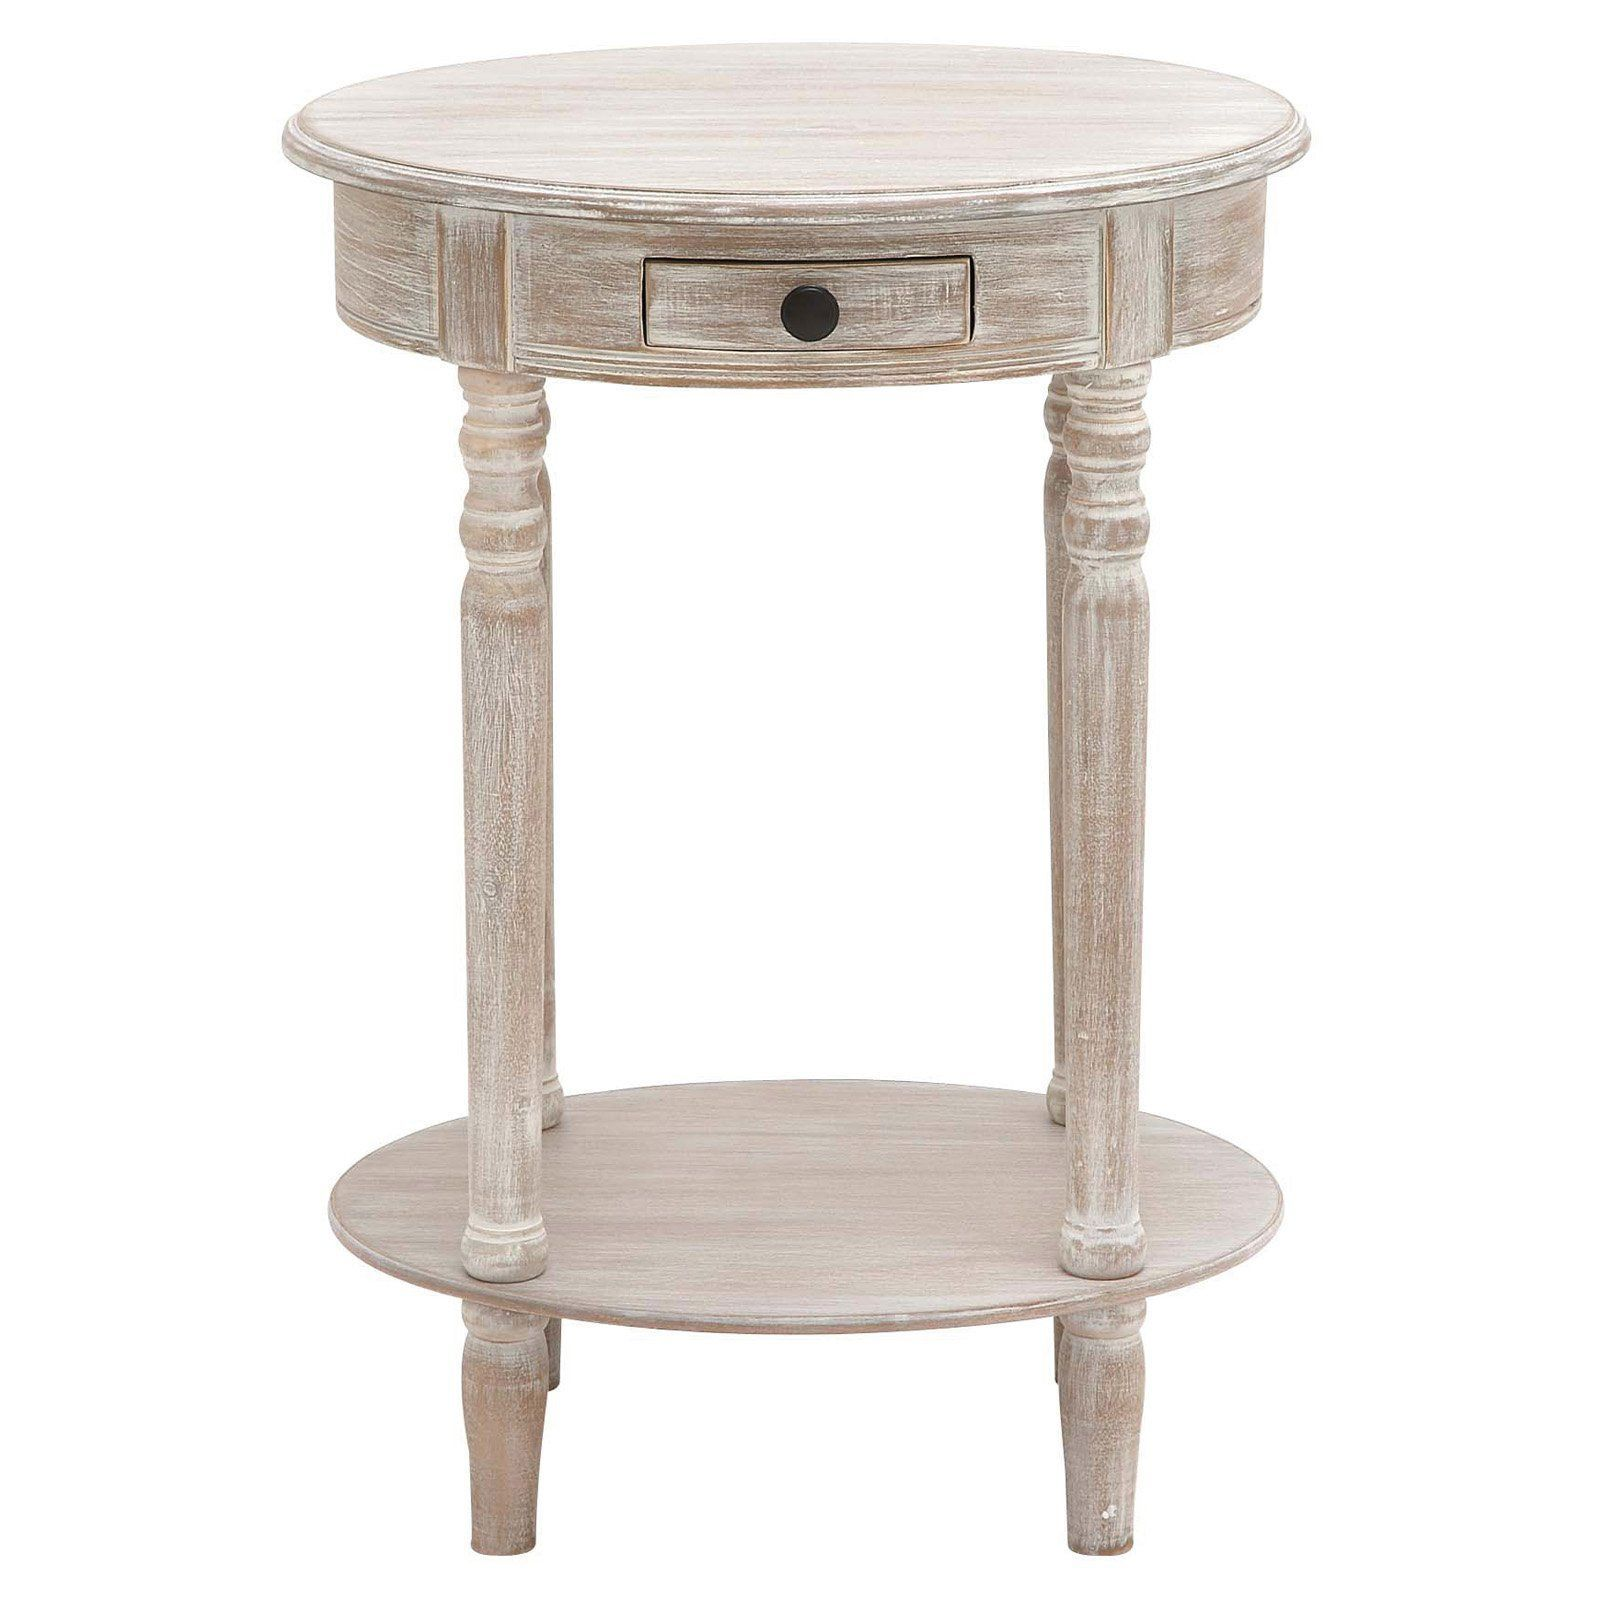 Uma Enterprises Wood Oval Accent Table End Tables At Hayneedle